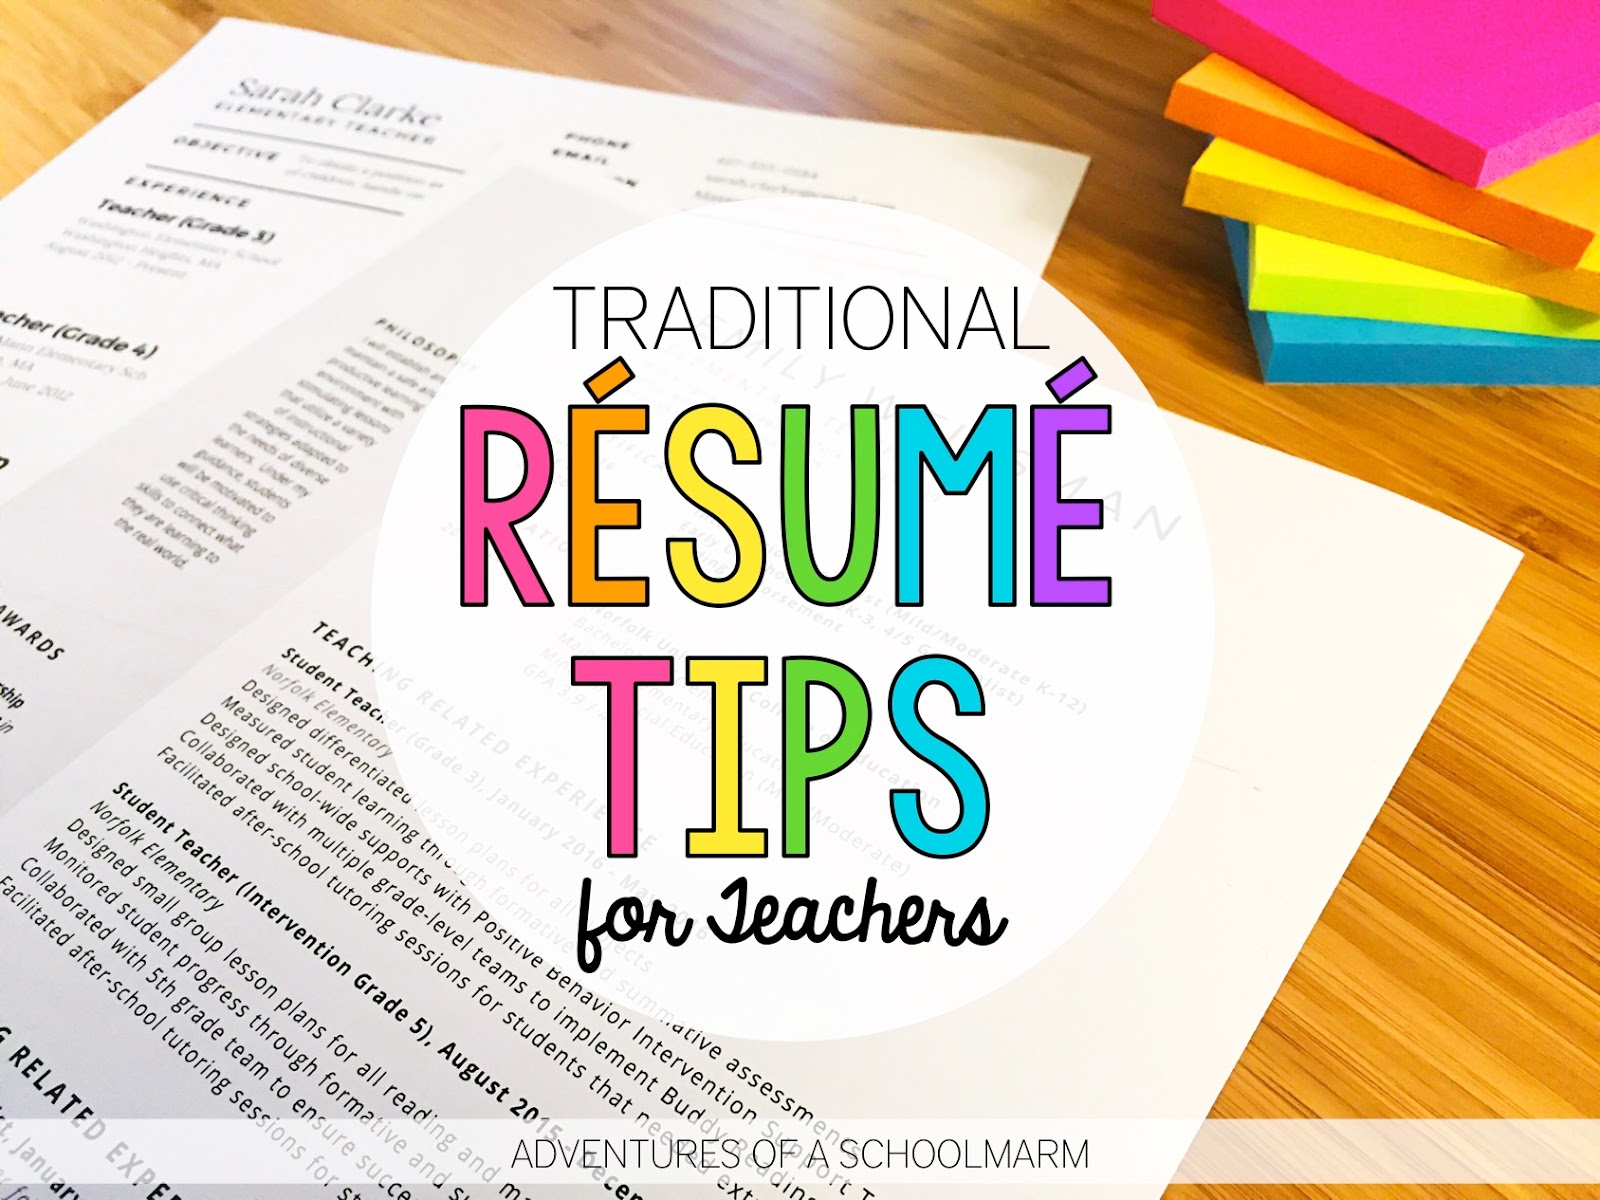 resume writing for teachers adventures of a schoolmarm do you need help writing a resume for teaching jobs this post will walk you